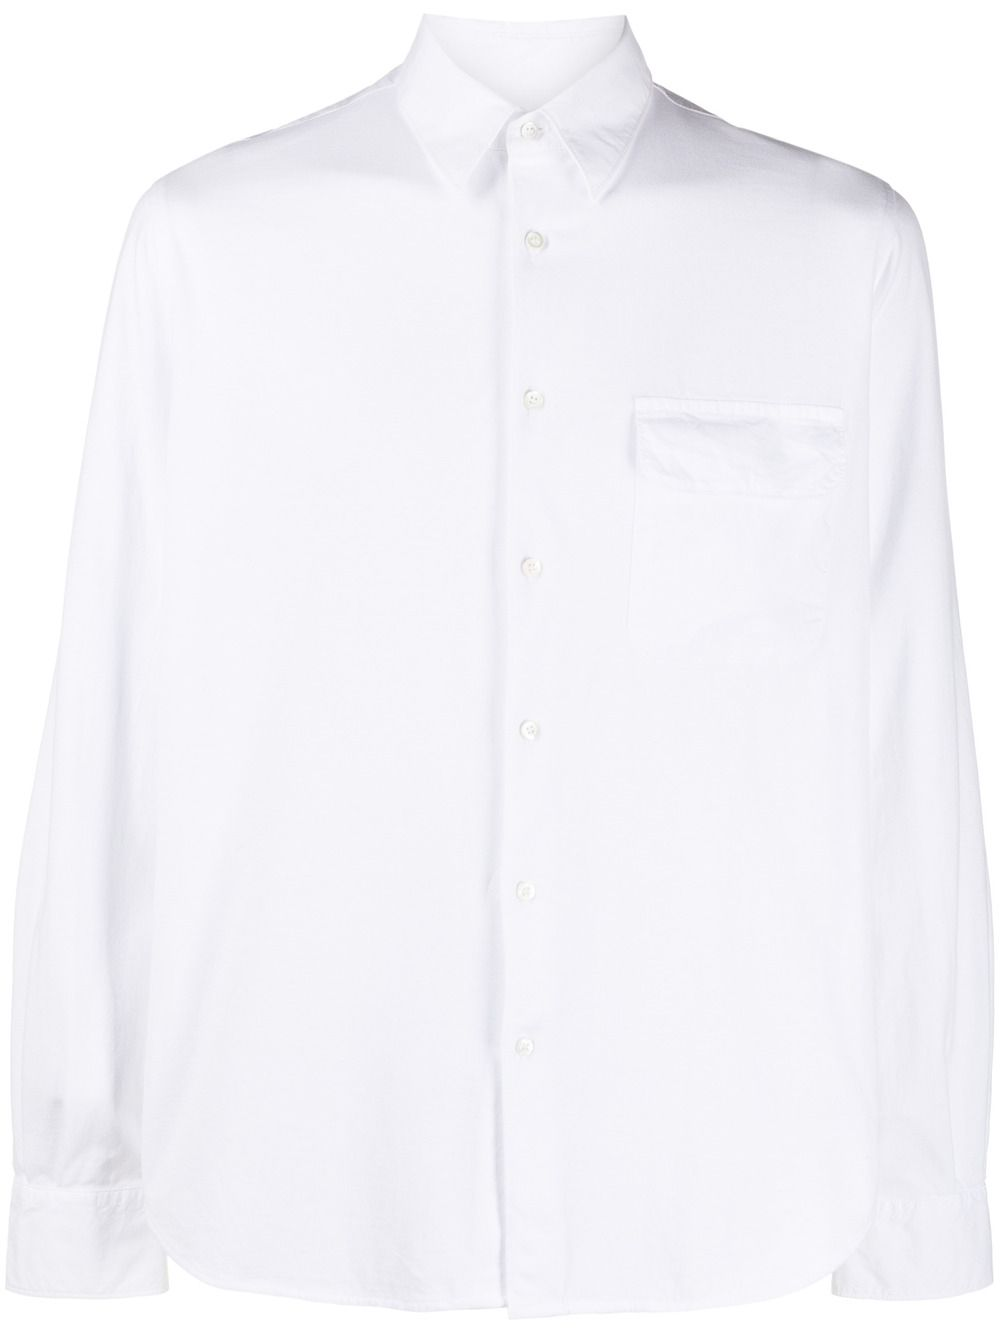 White cotton long-sleeved shirt featuring classic collar ASPESI |  | AY46-940885072